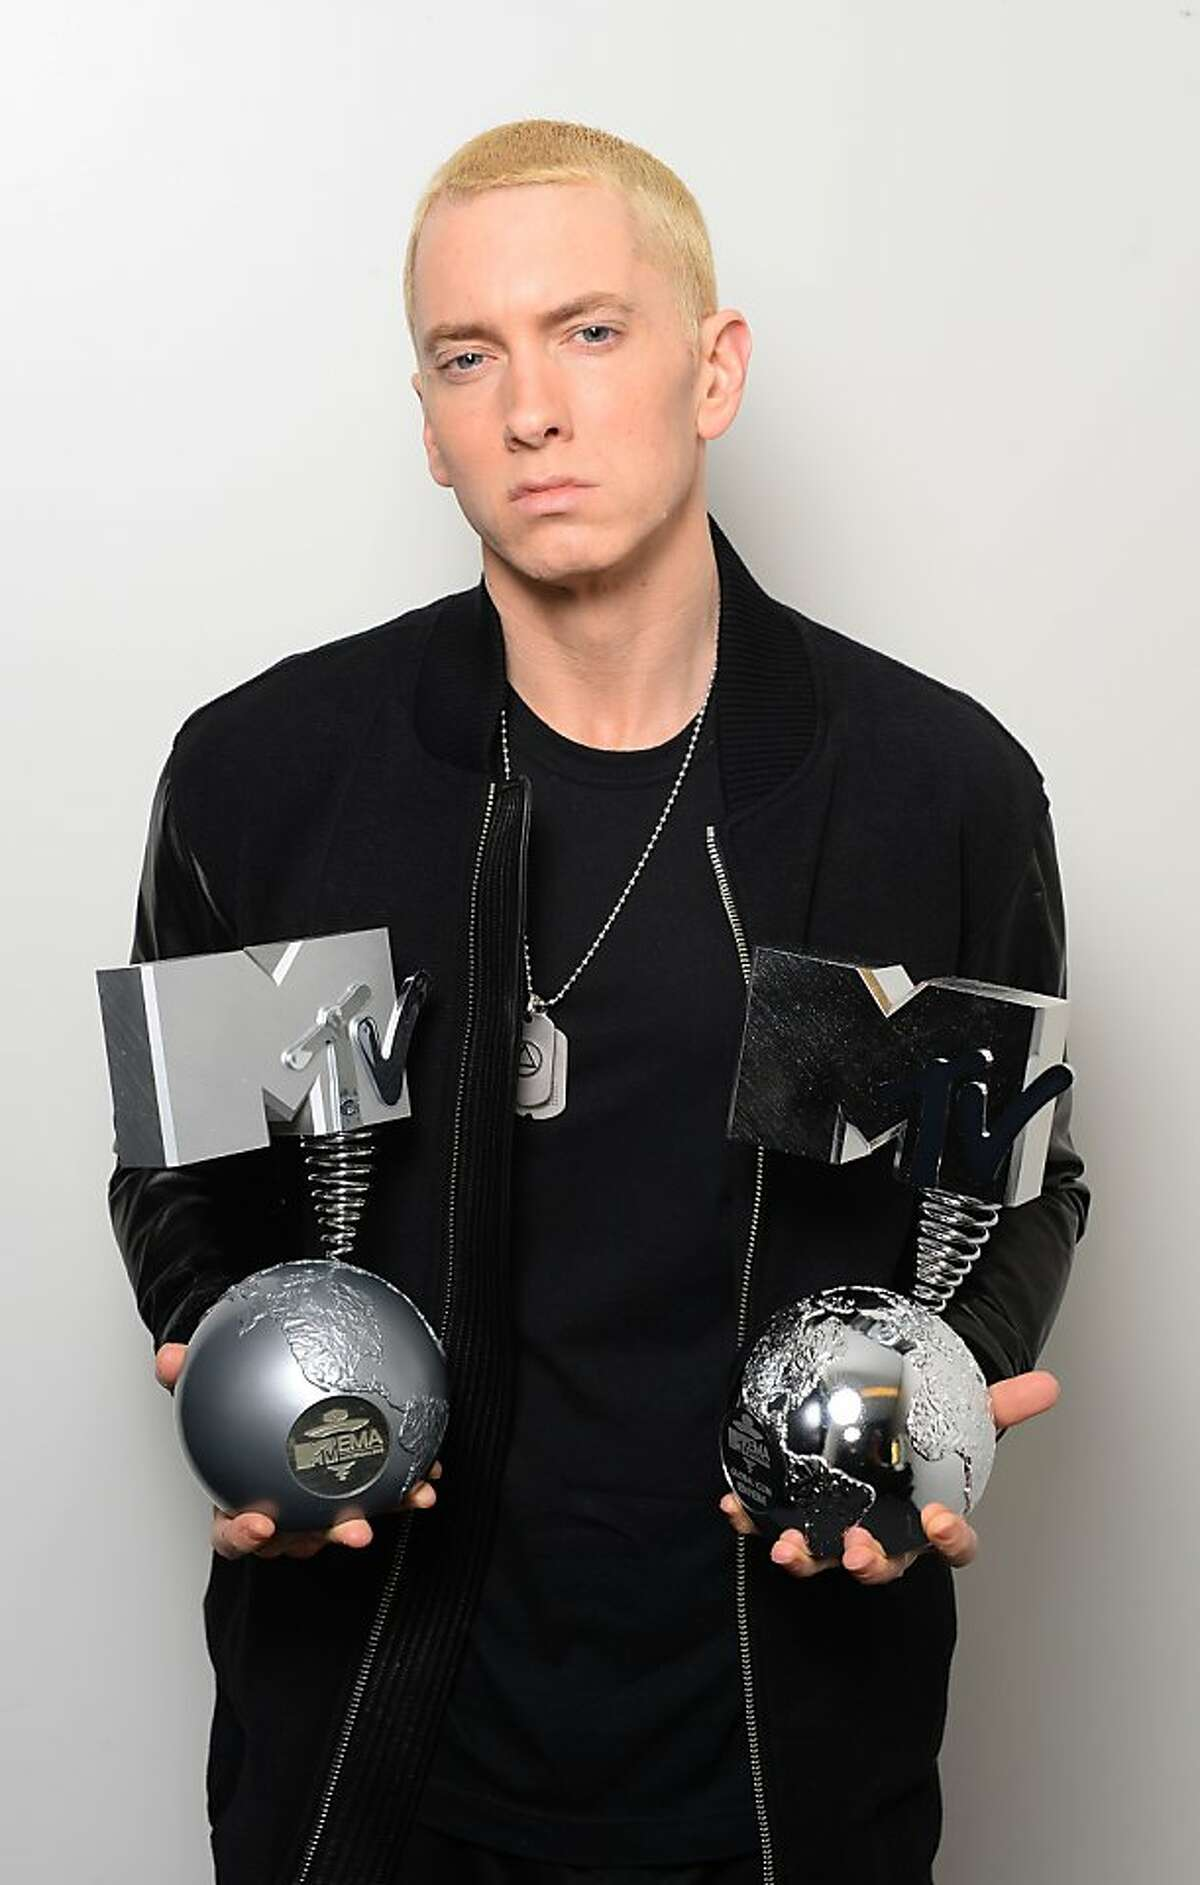 Obviously one of the happiest days of his life: Eminem is overcome with excitement after winning the Best Hip Hop and Global Icon awards during the MTV EMAs in Amsterdam.